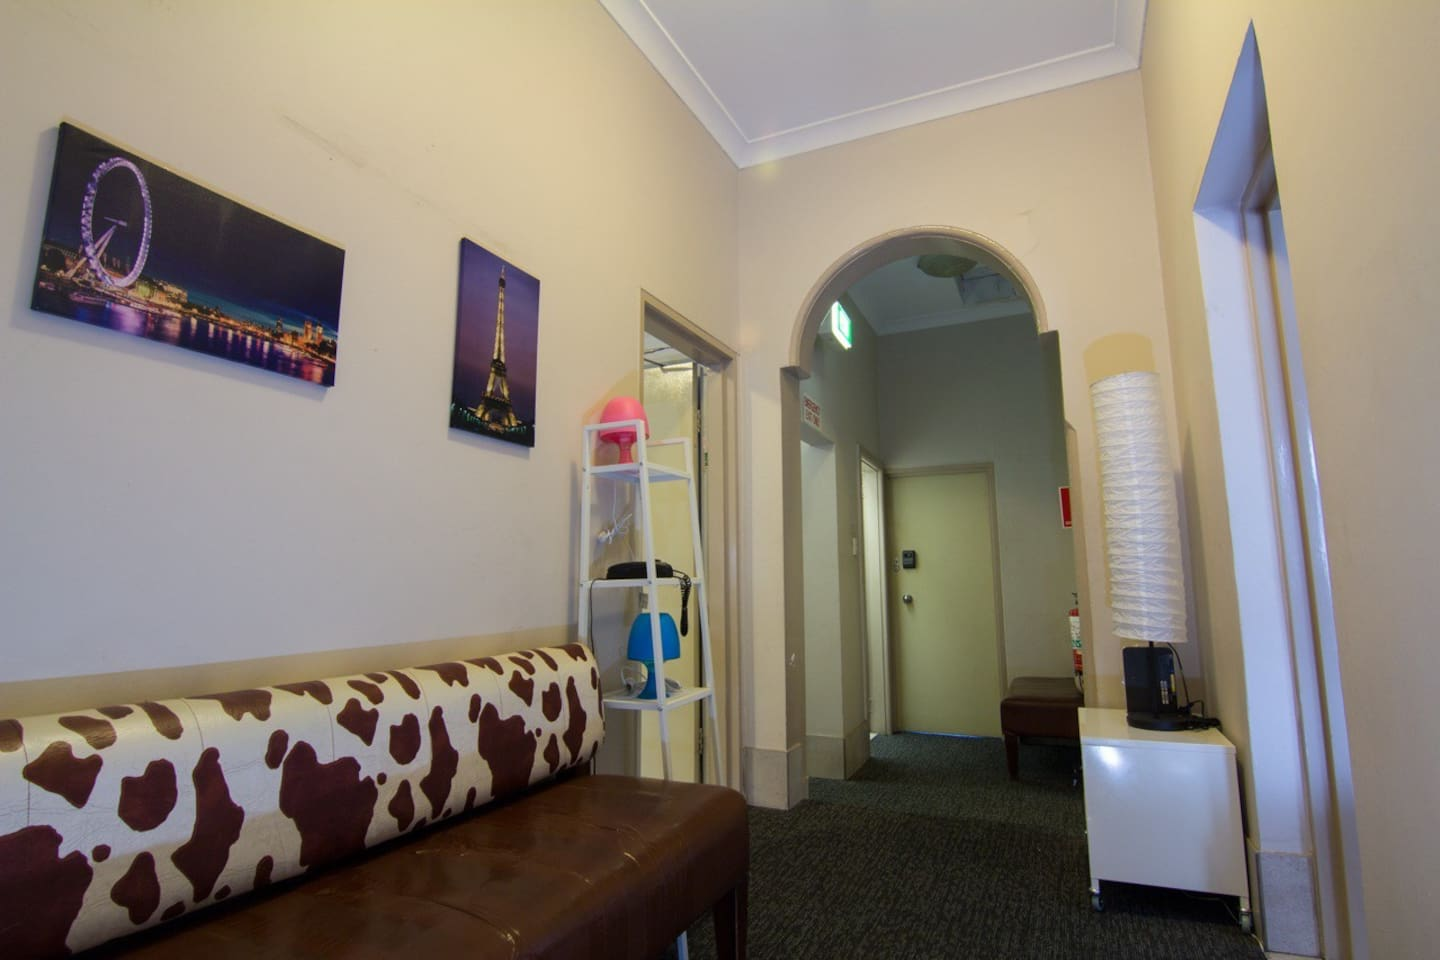 Crossroads Guesthouse - hallway and general area.